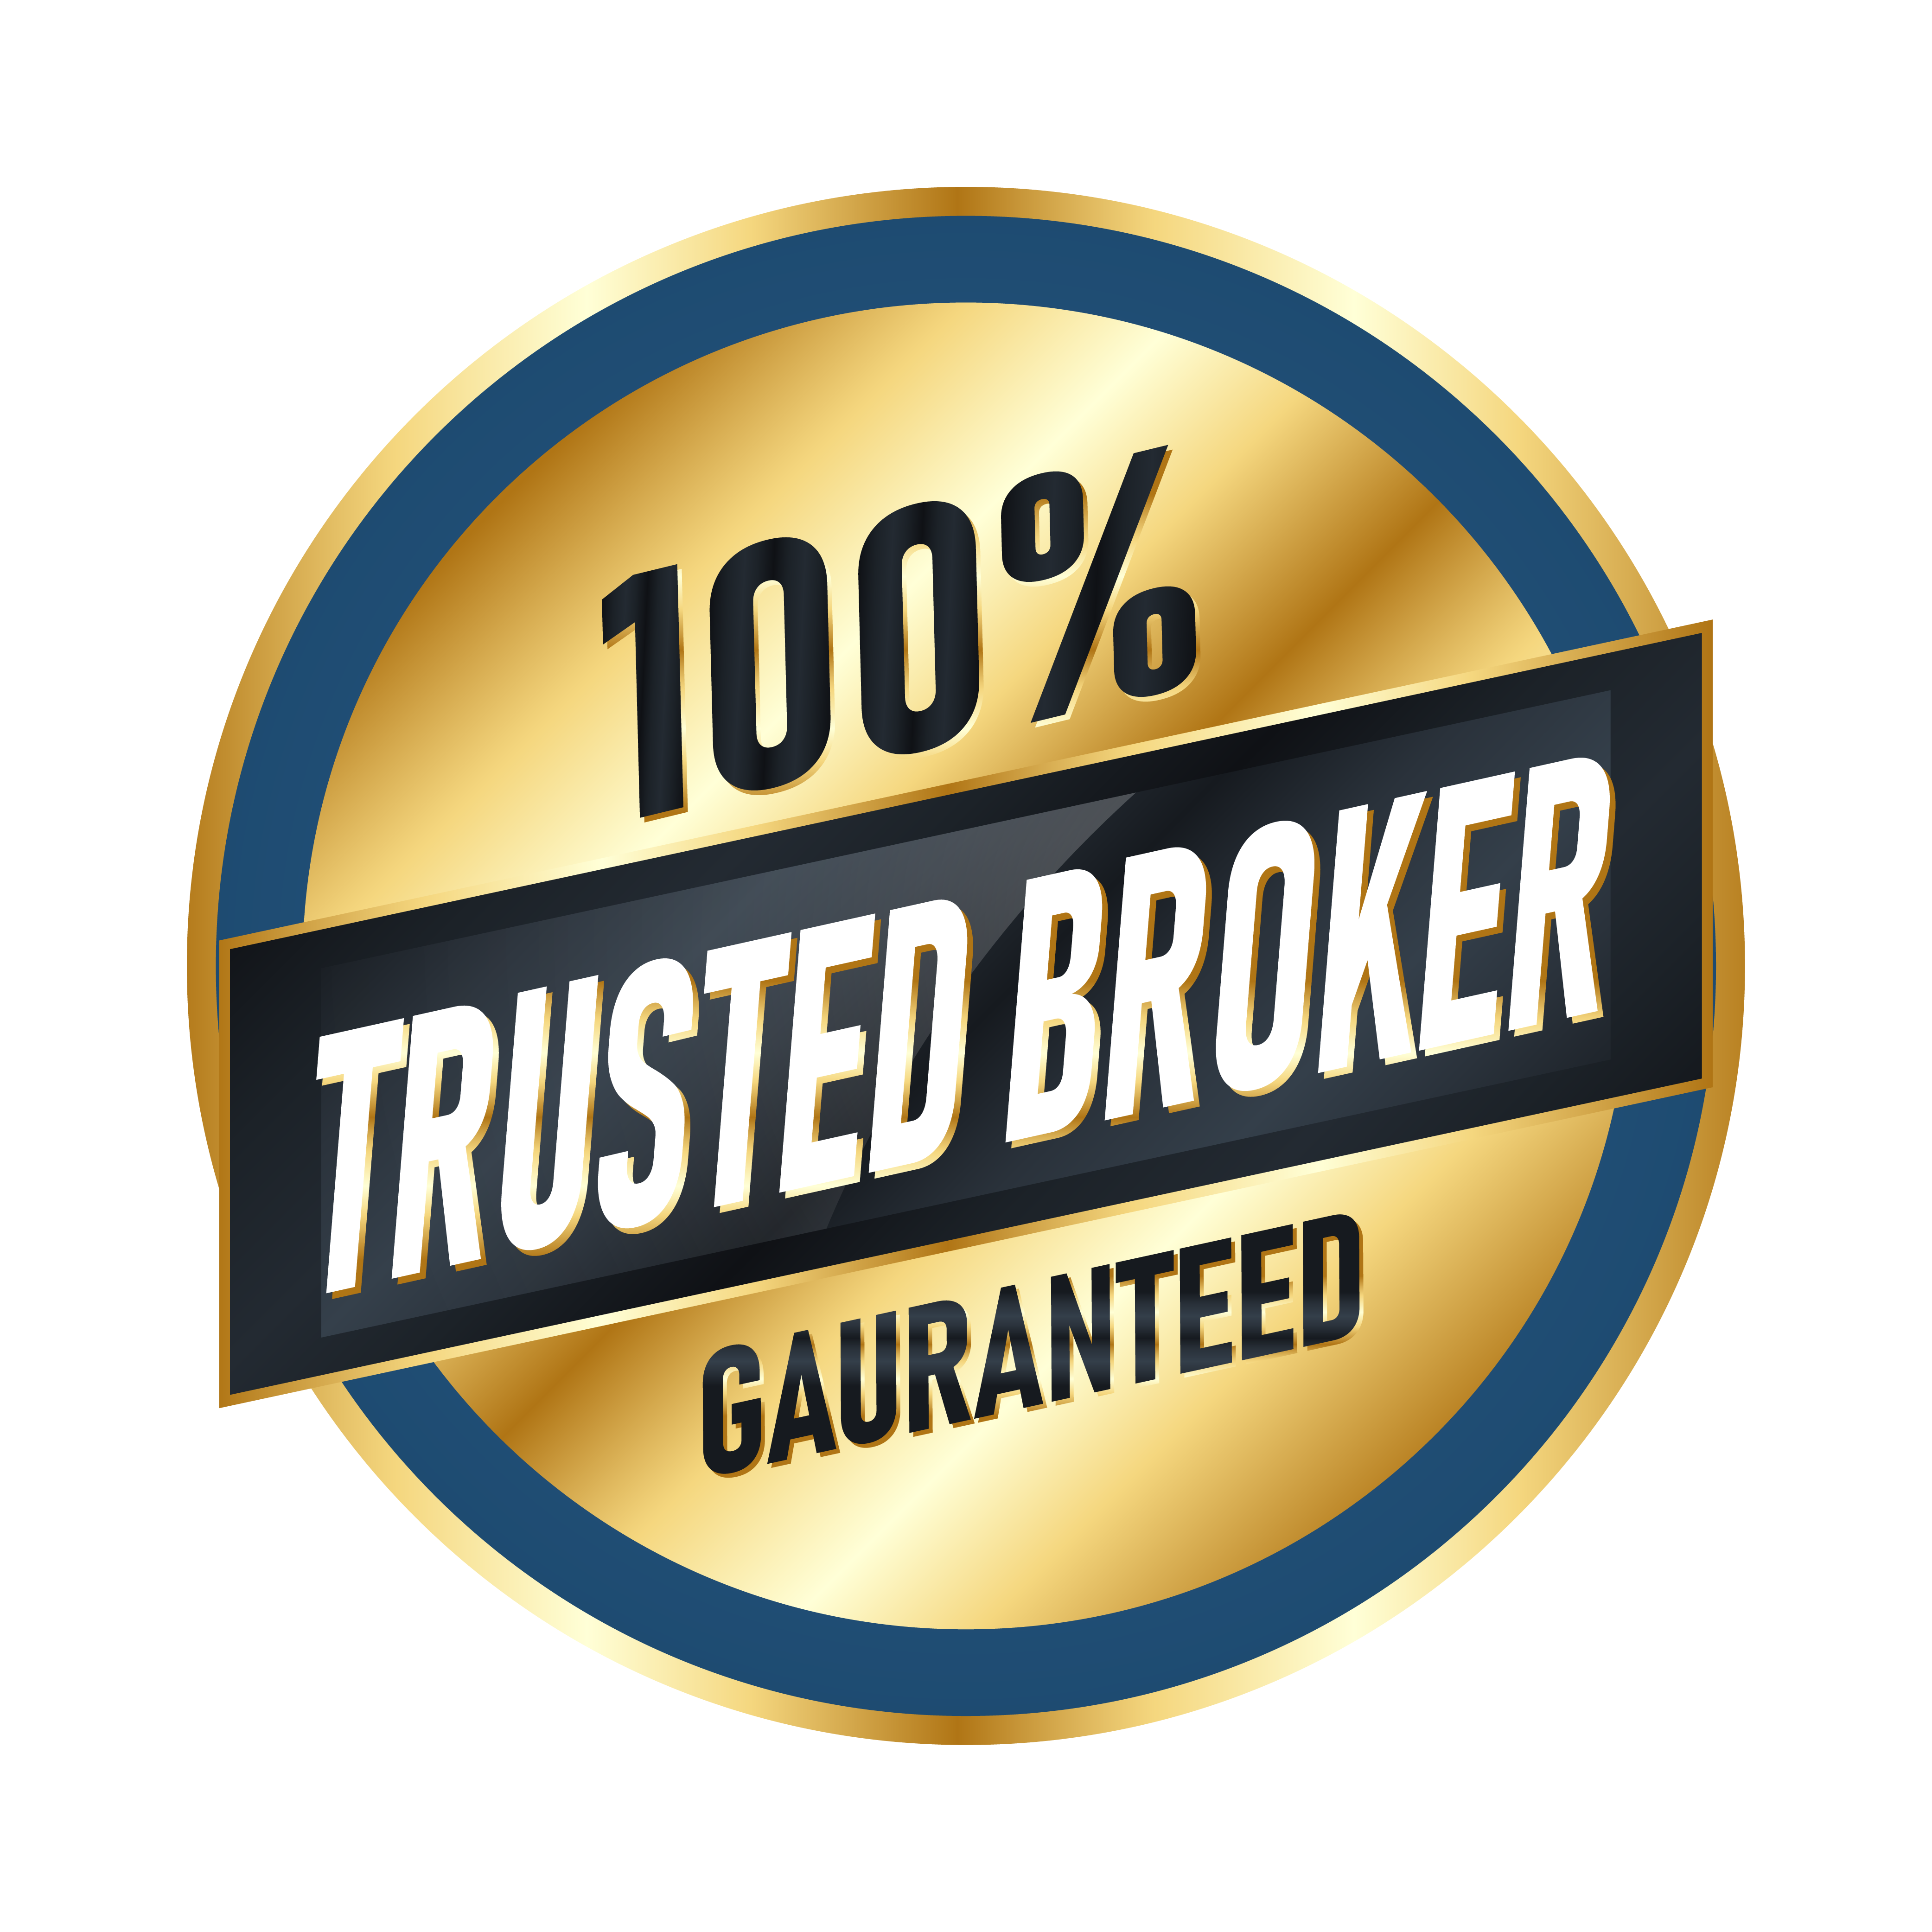 BlackBull Markets is a trusted Forex Broker